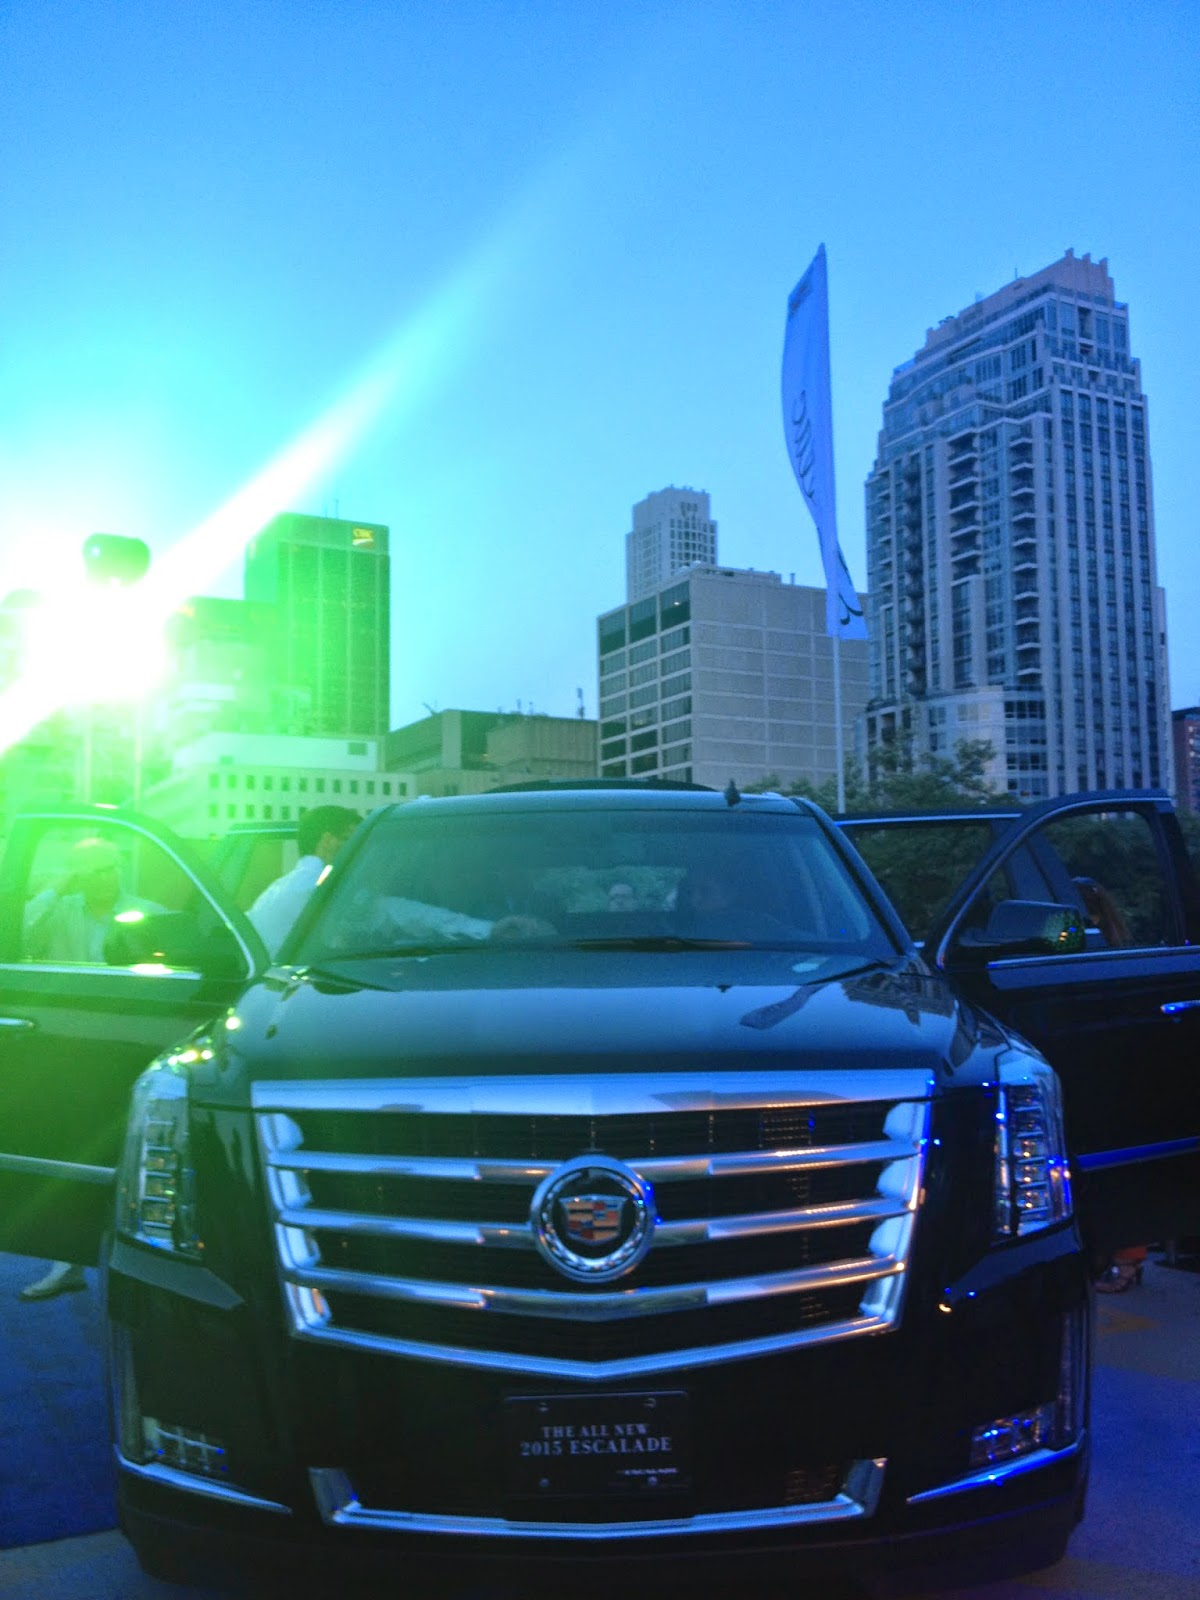 Reveal of the 2015 Cadillac Escalade